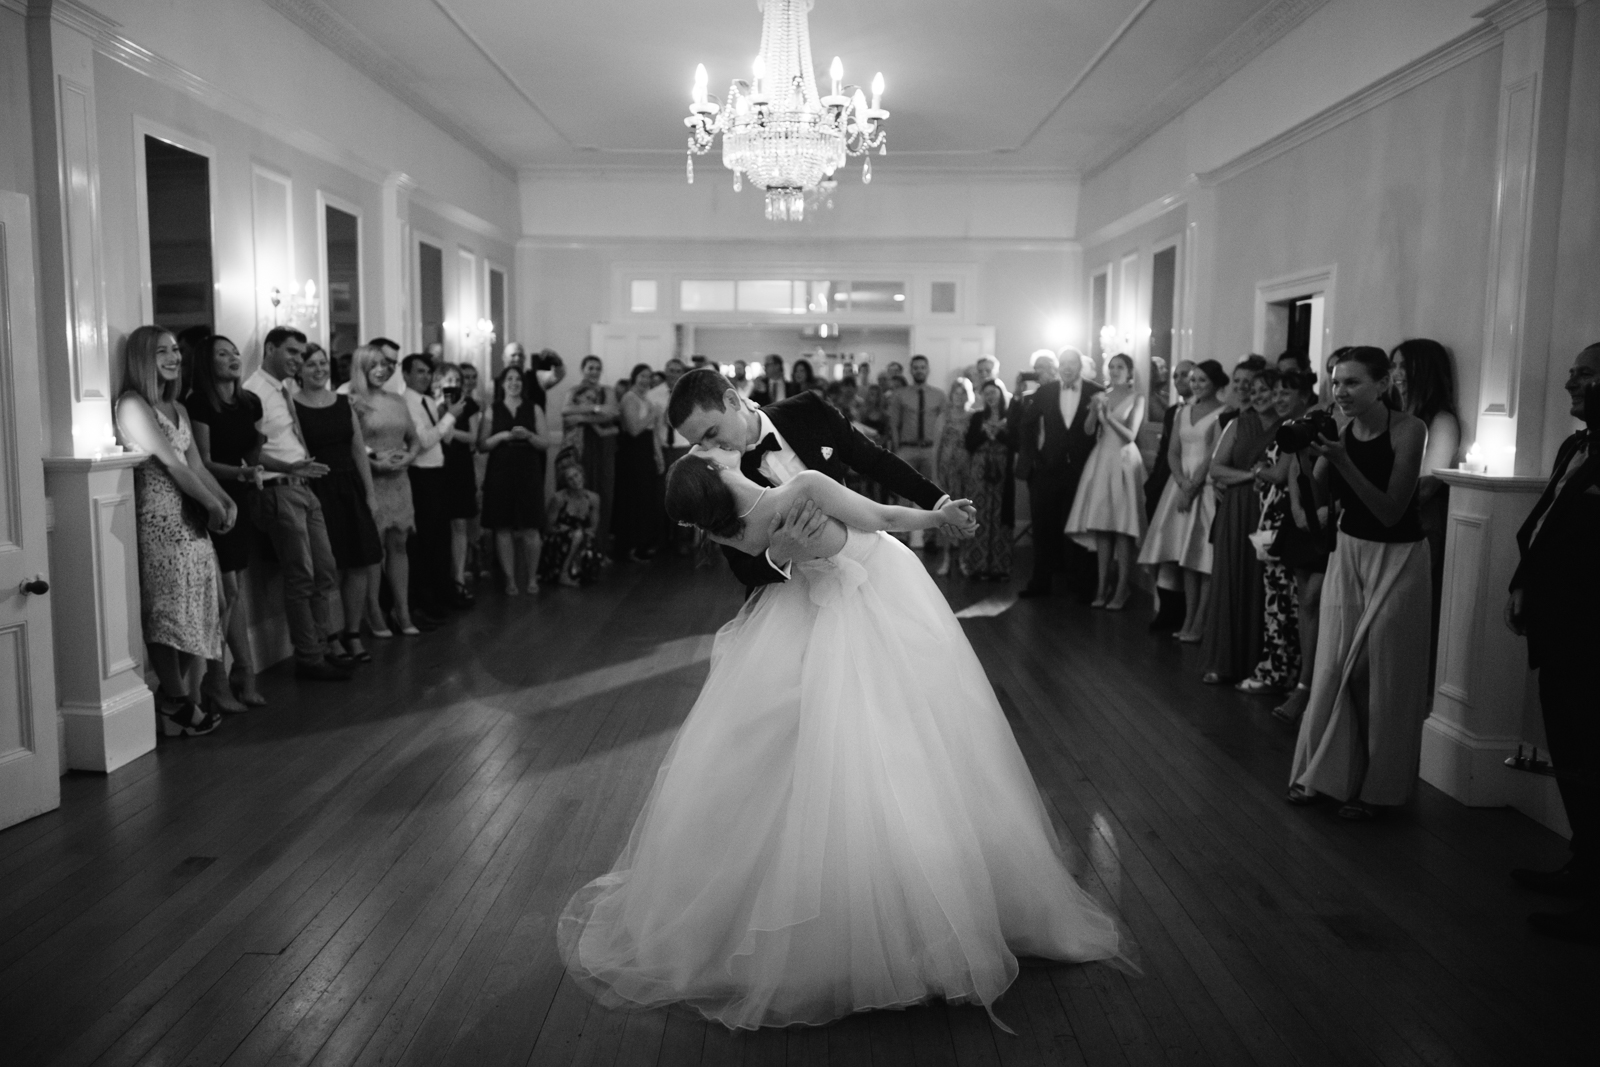 95-Bec_Kilpatrick_Photography_Brooke_and_Stefano_Toowoomba_Wedding_BlogATP_3114